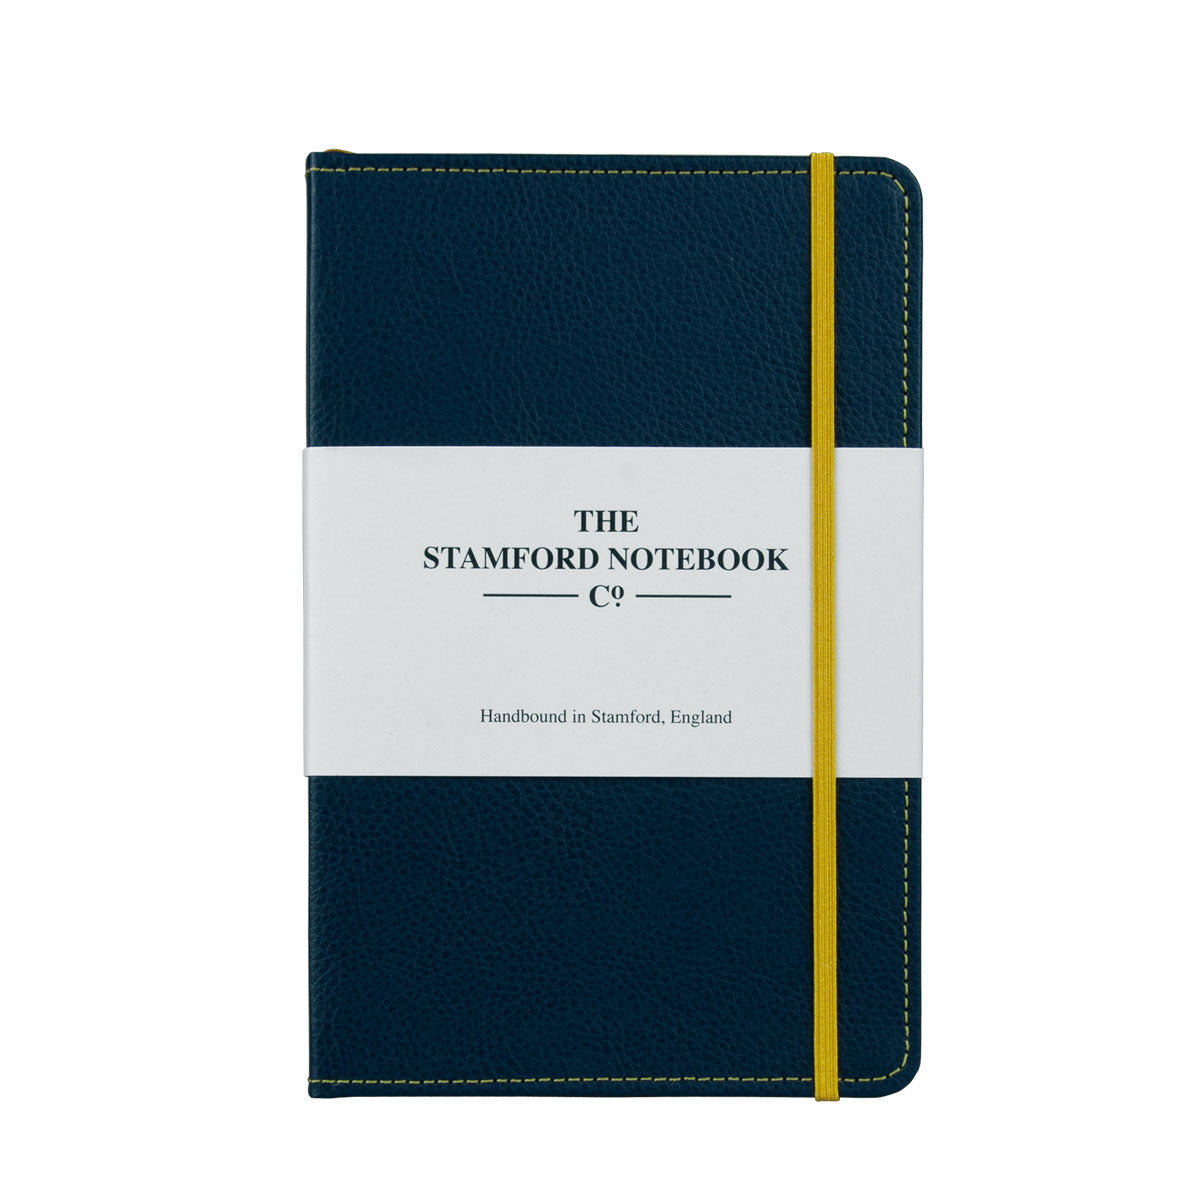 Marine Blue leather notebook with yellow stitching